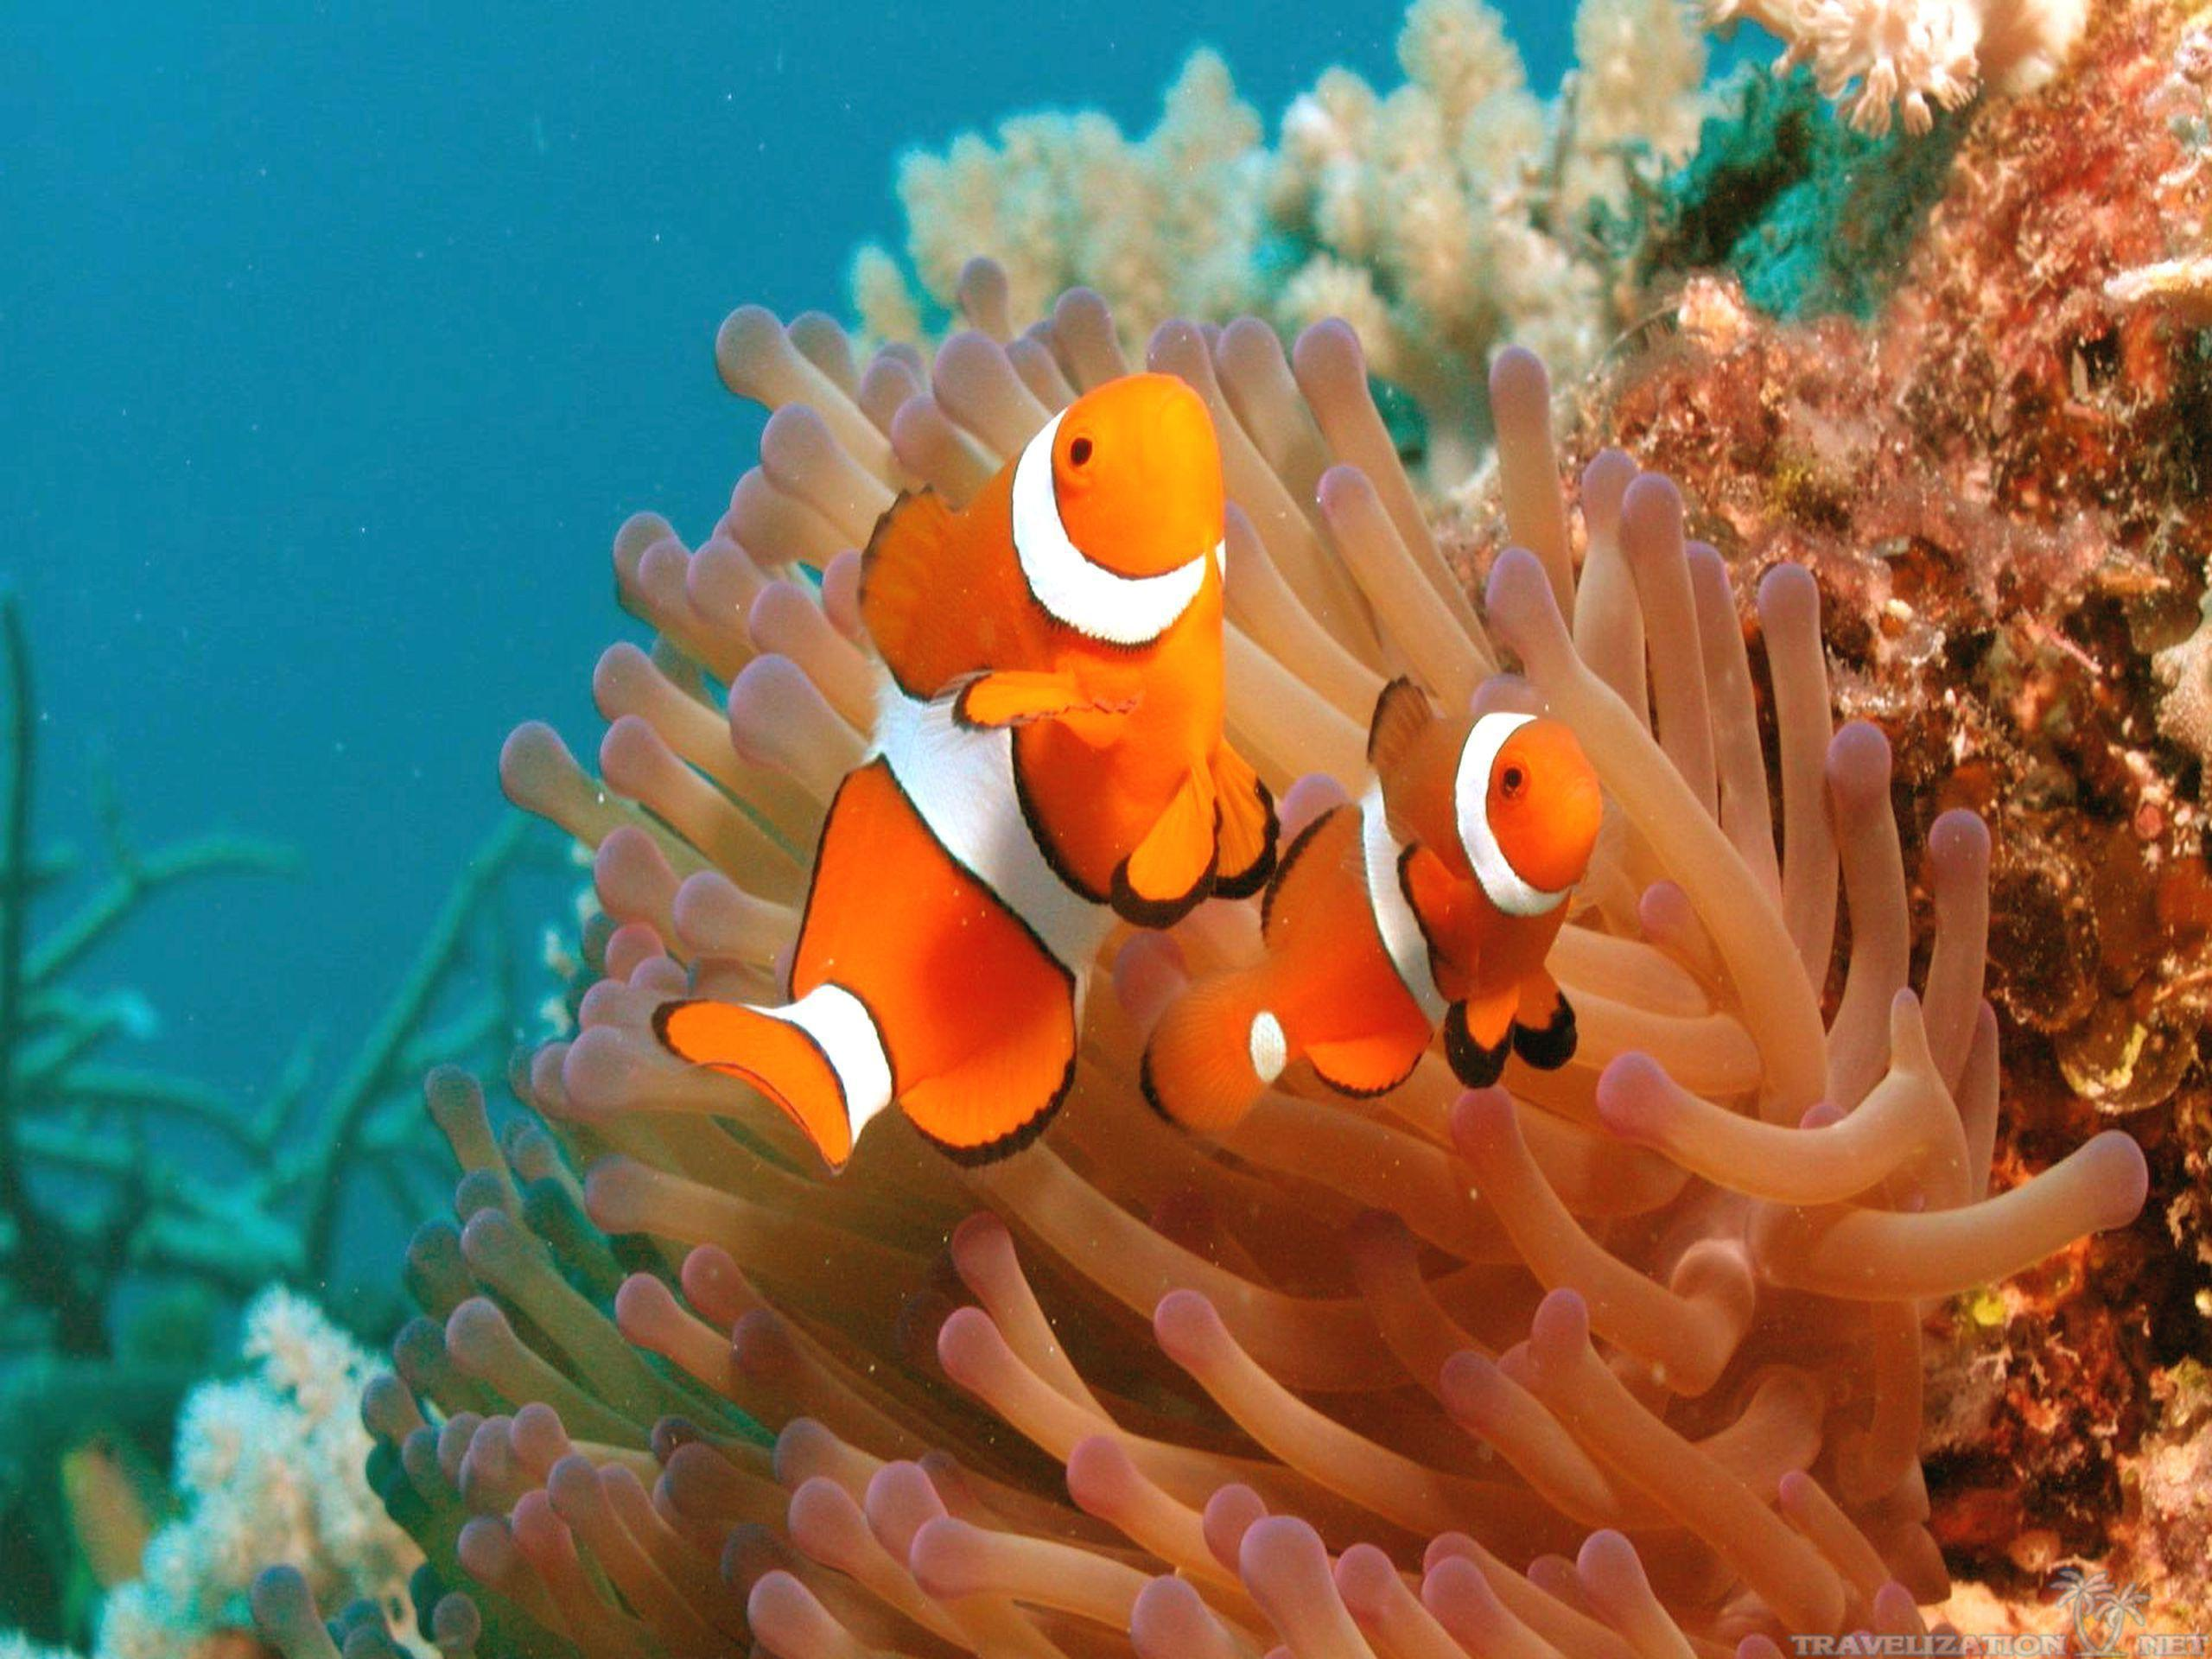 Clownfish Backgrounds - Wallpaper Cave